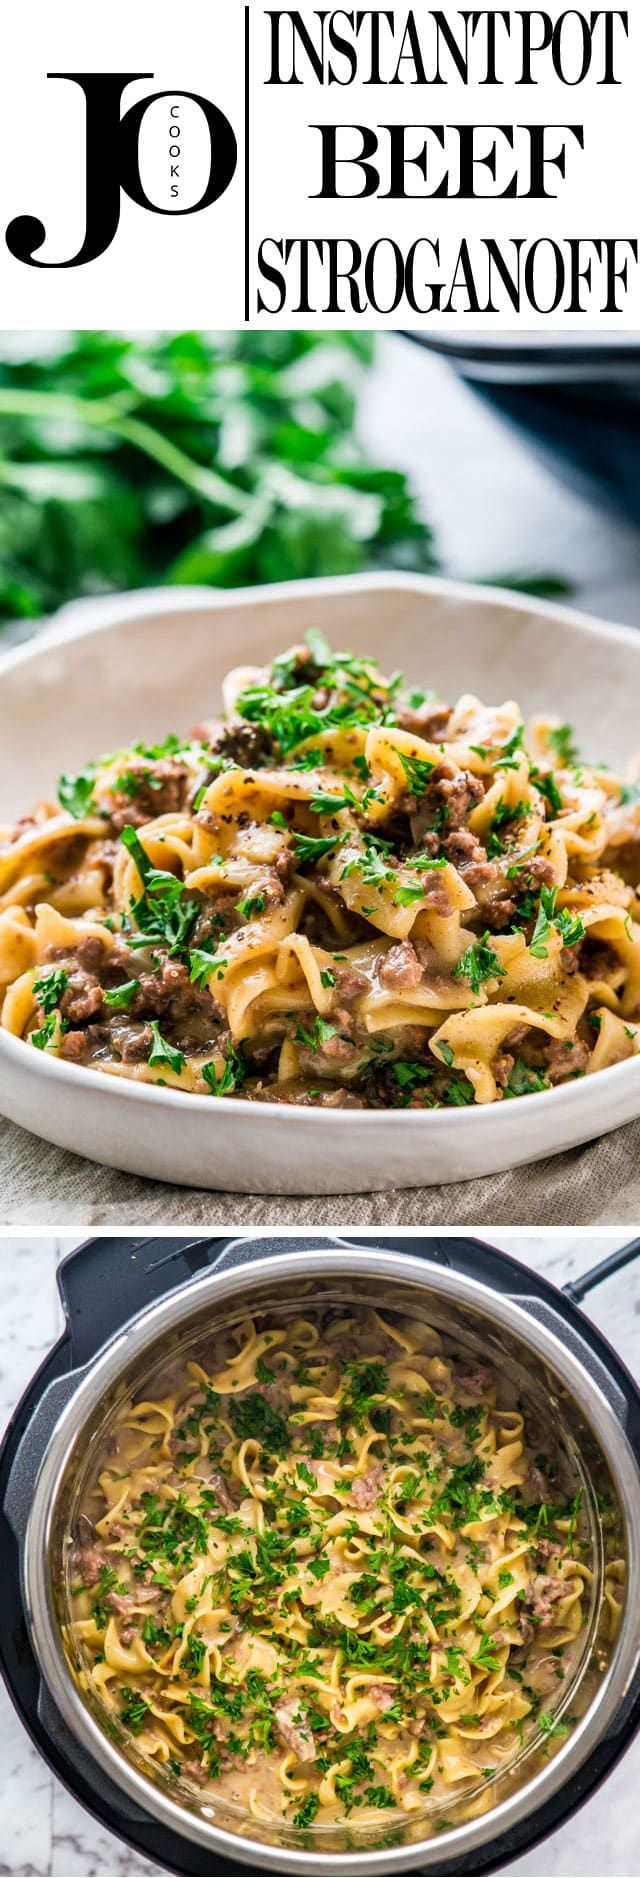 This Instant Pot Beef Stroganoff is about as easy and fast as it gets when makin…